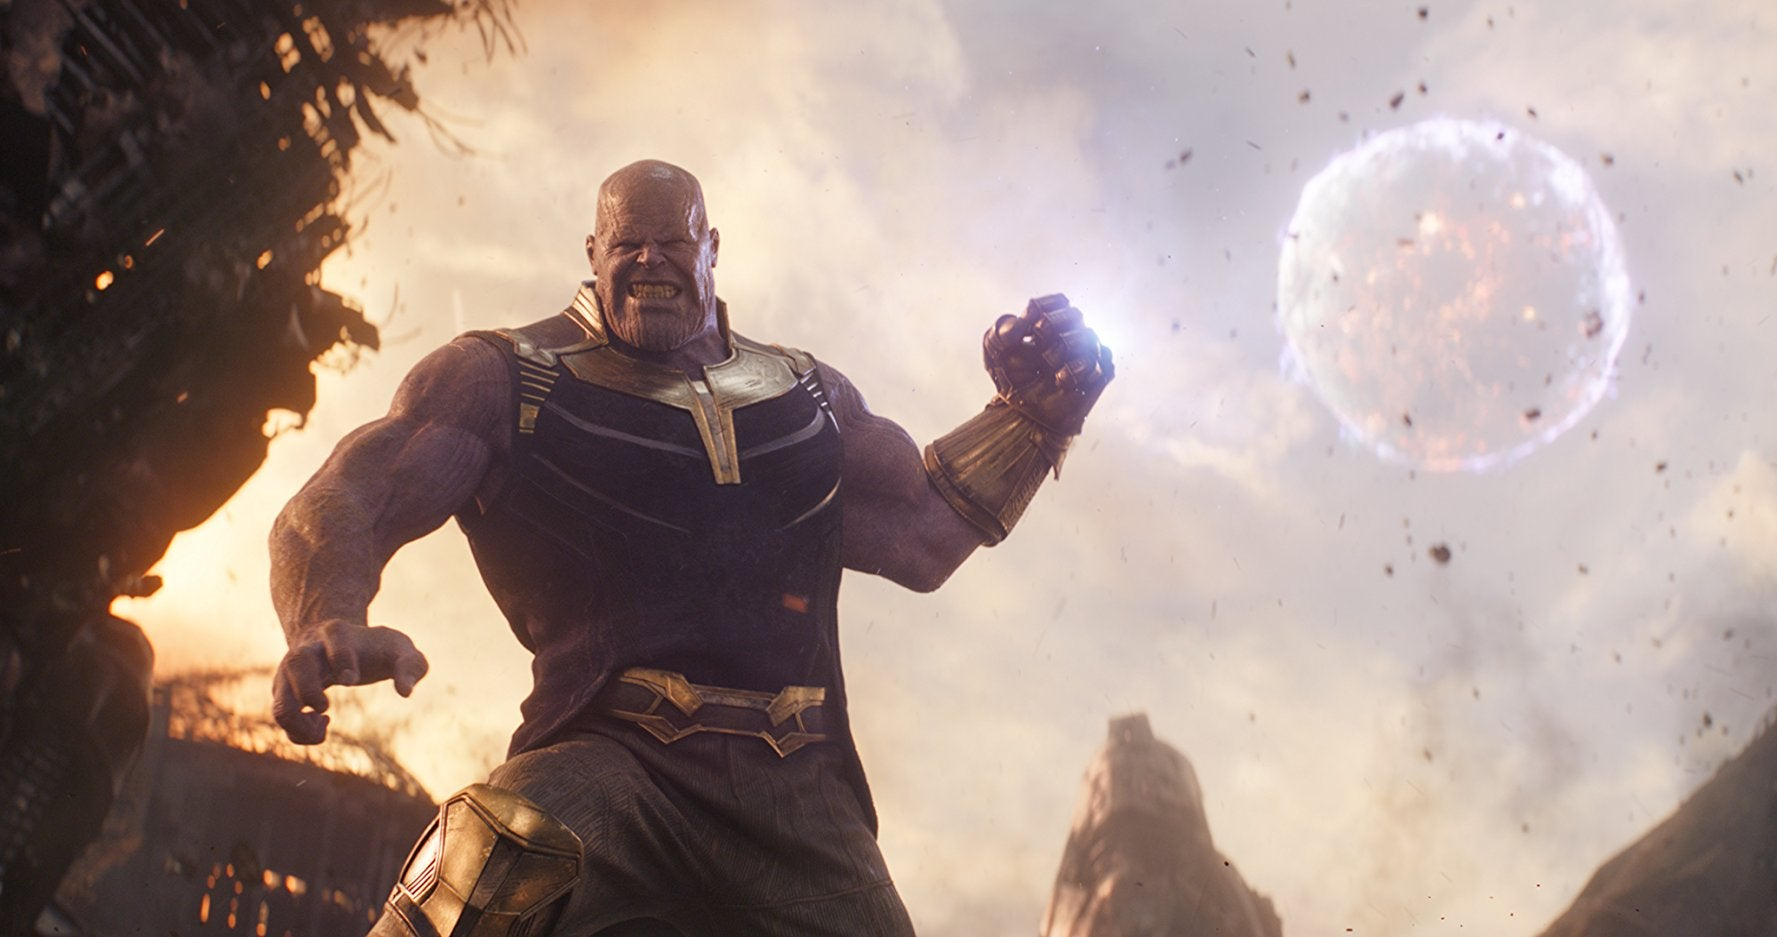 Thanos throws a moon, as one does.